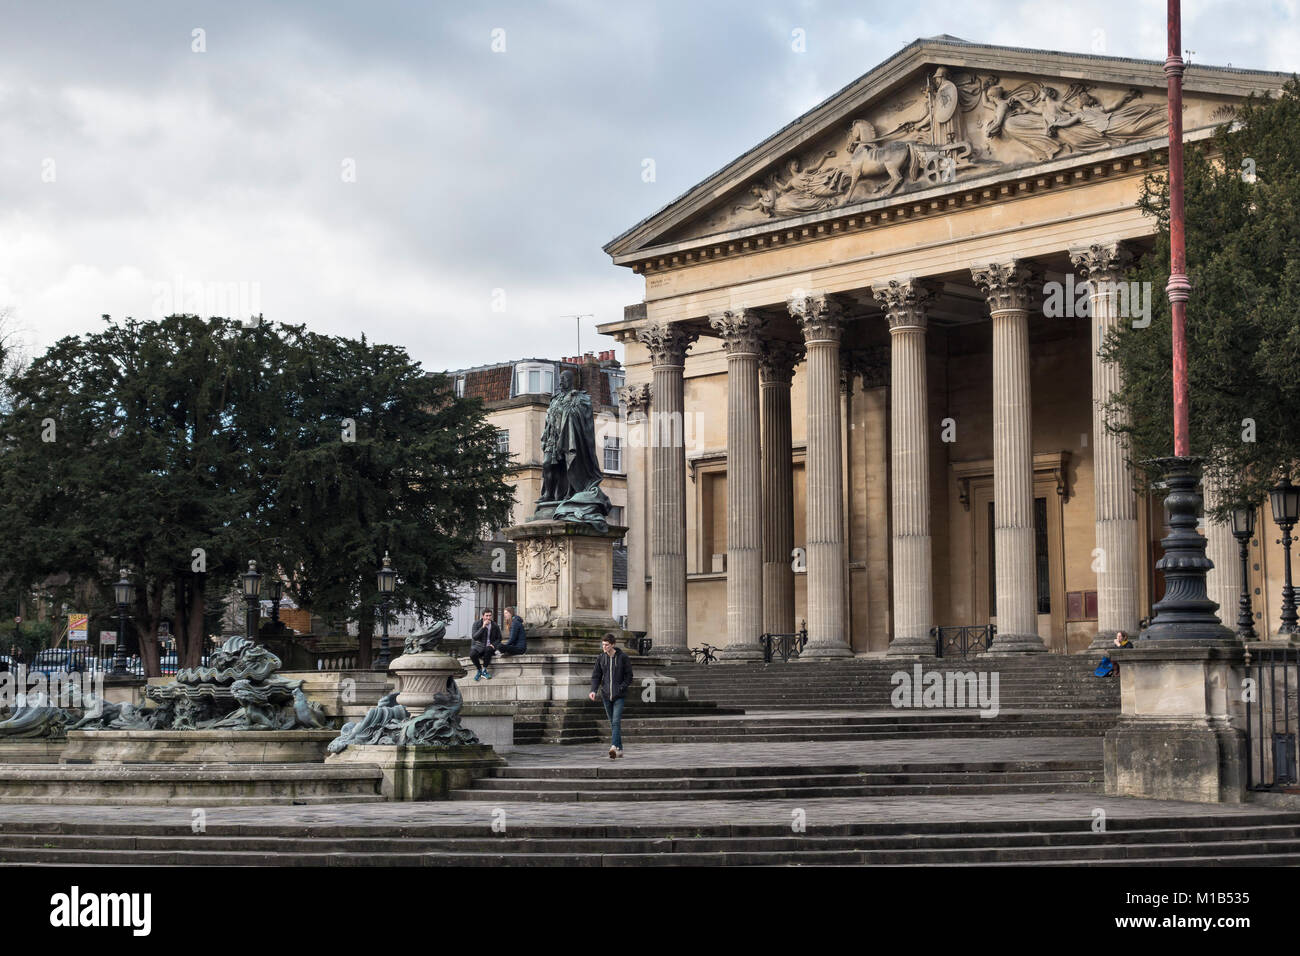 Clifton, Bristol. The Victoria Rooms (by Charles Dyer, 1838) house the Music Department of the University of Bristol. - Stock Image